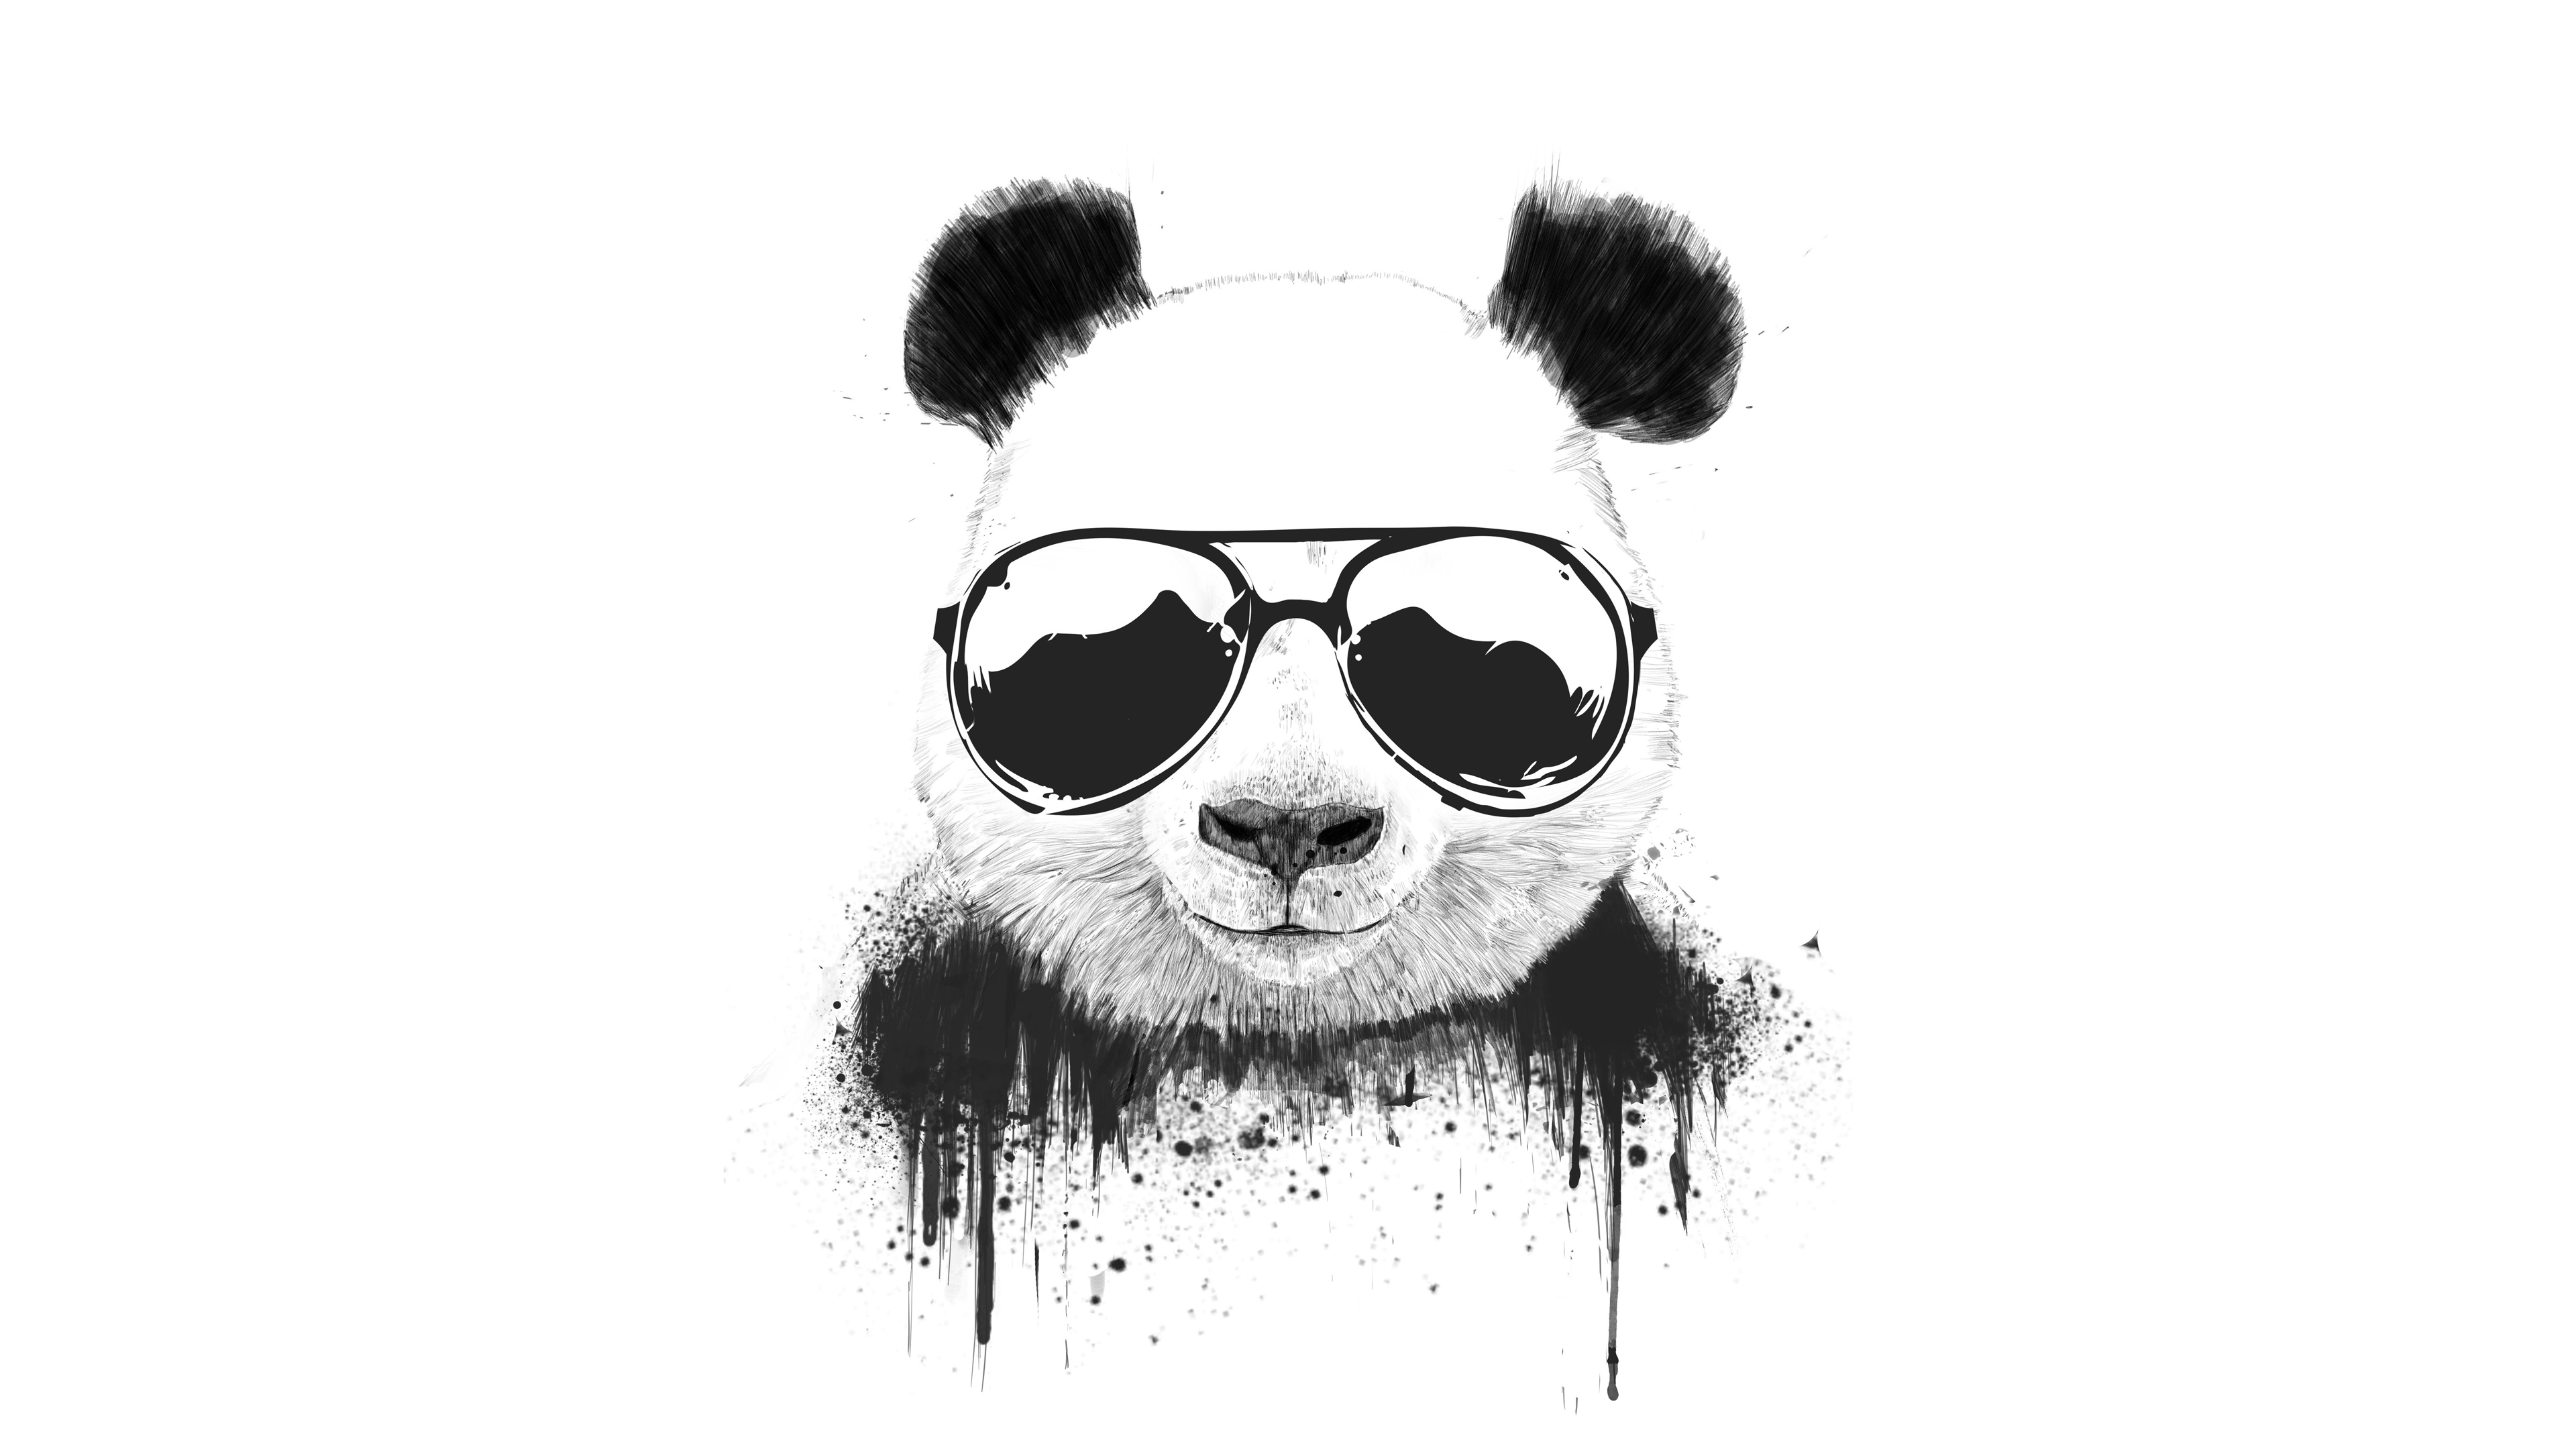 Stay Cool Panda Hd Artist 4k Wallpapers Images Backgrounds Photos And Pictures